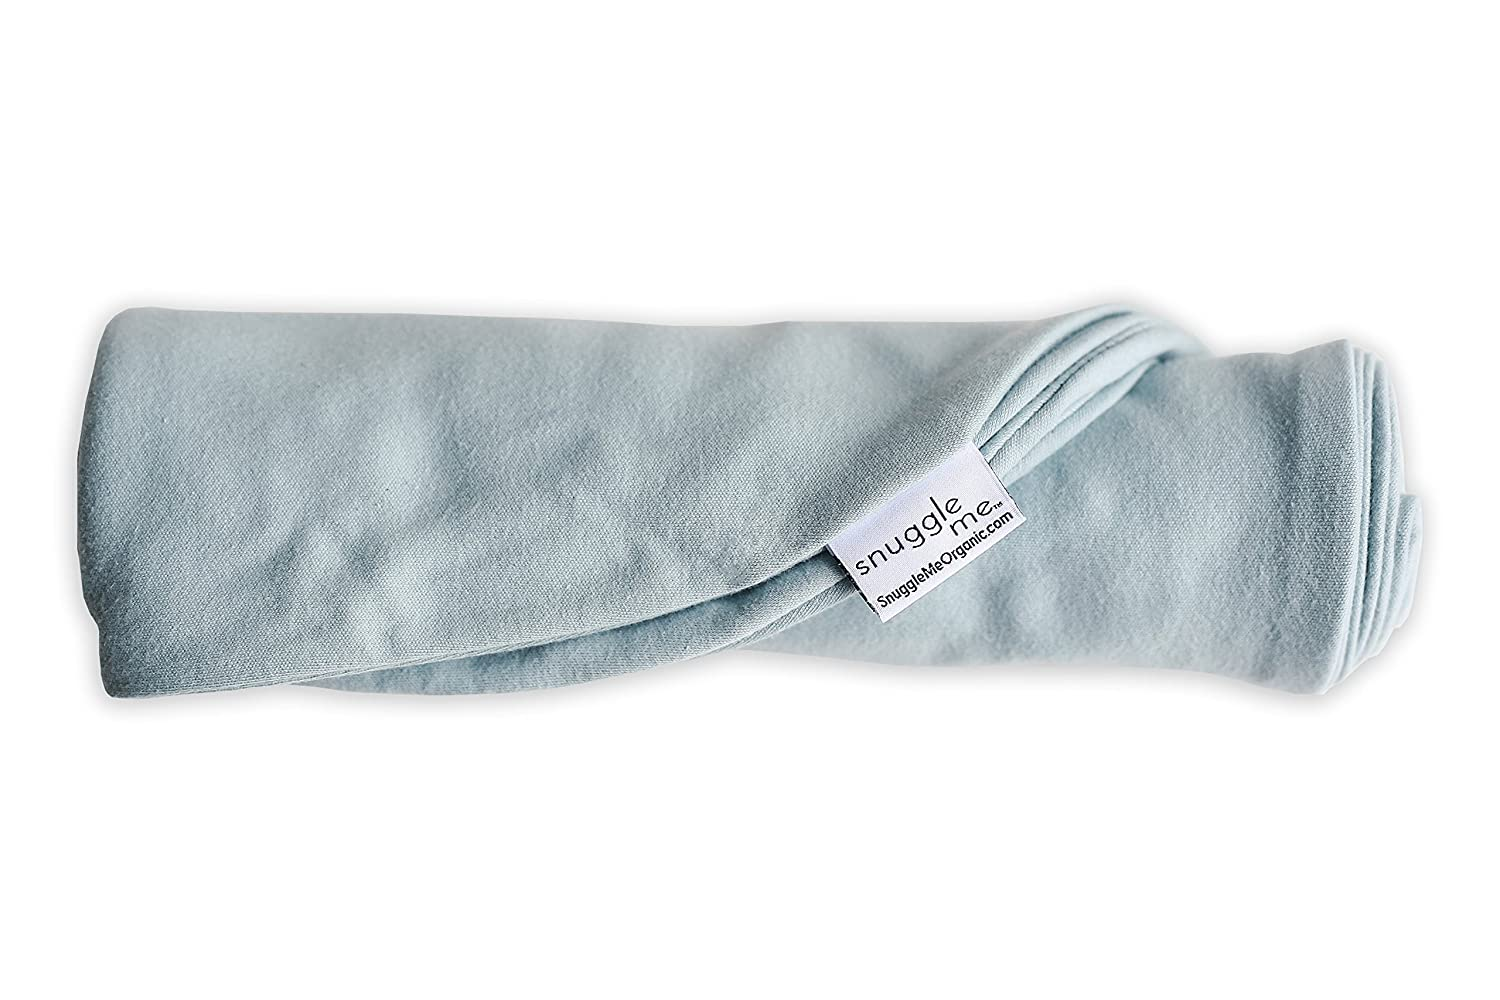 Extra Cover for Snuggle Me Cosleeping Beds, Ivory, Organic Cotton Fleece 2201